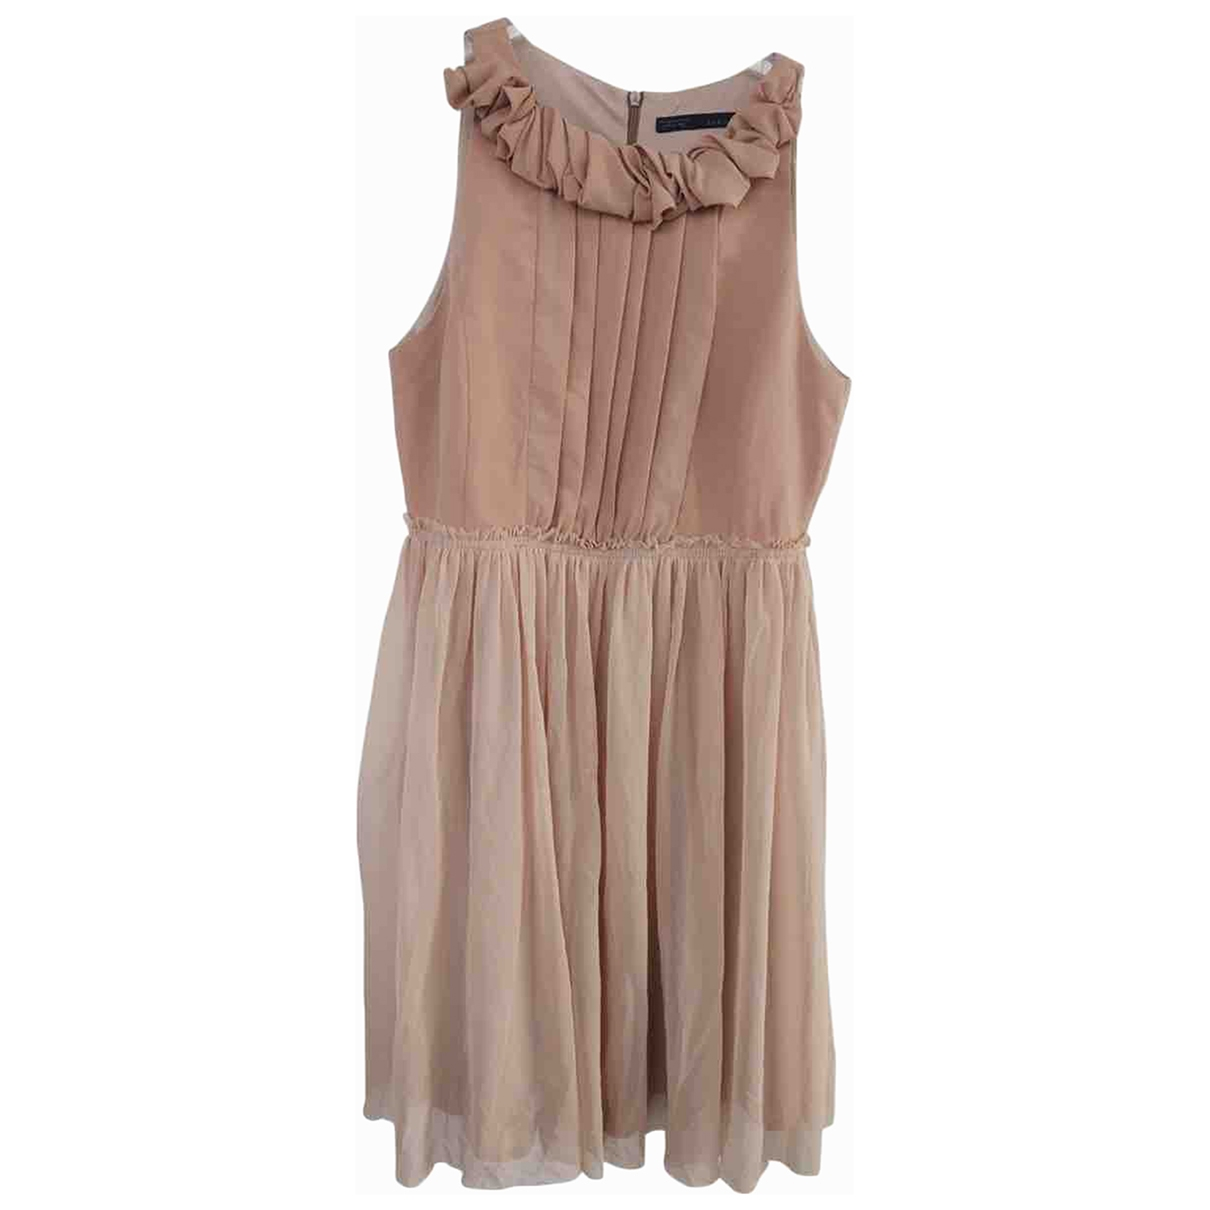 Zara \N Beige Silk dress for Women S International